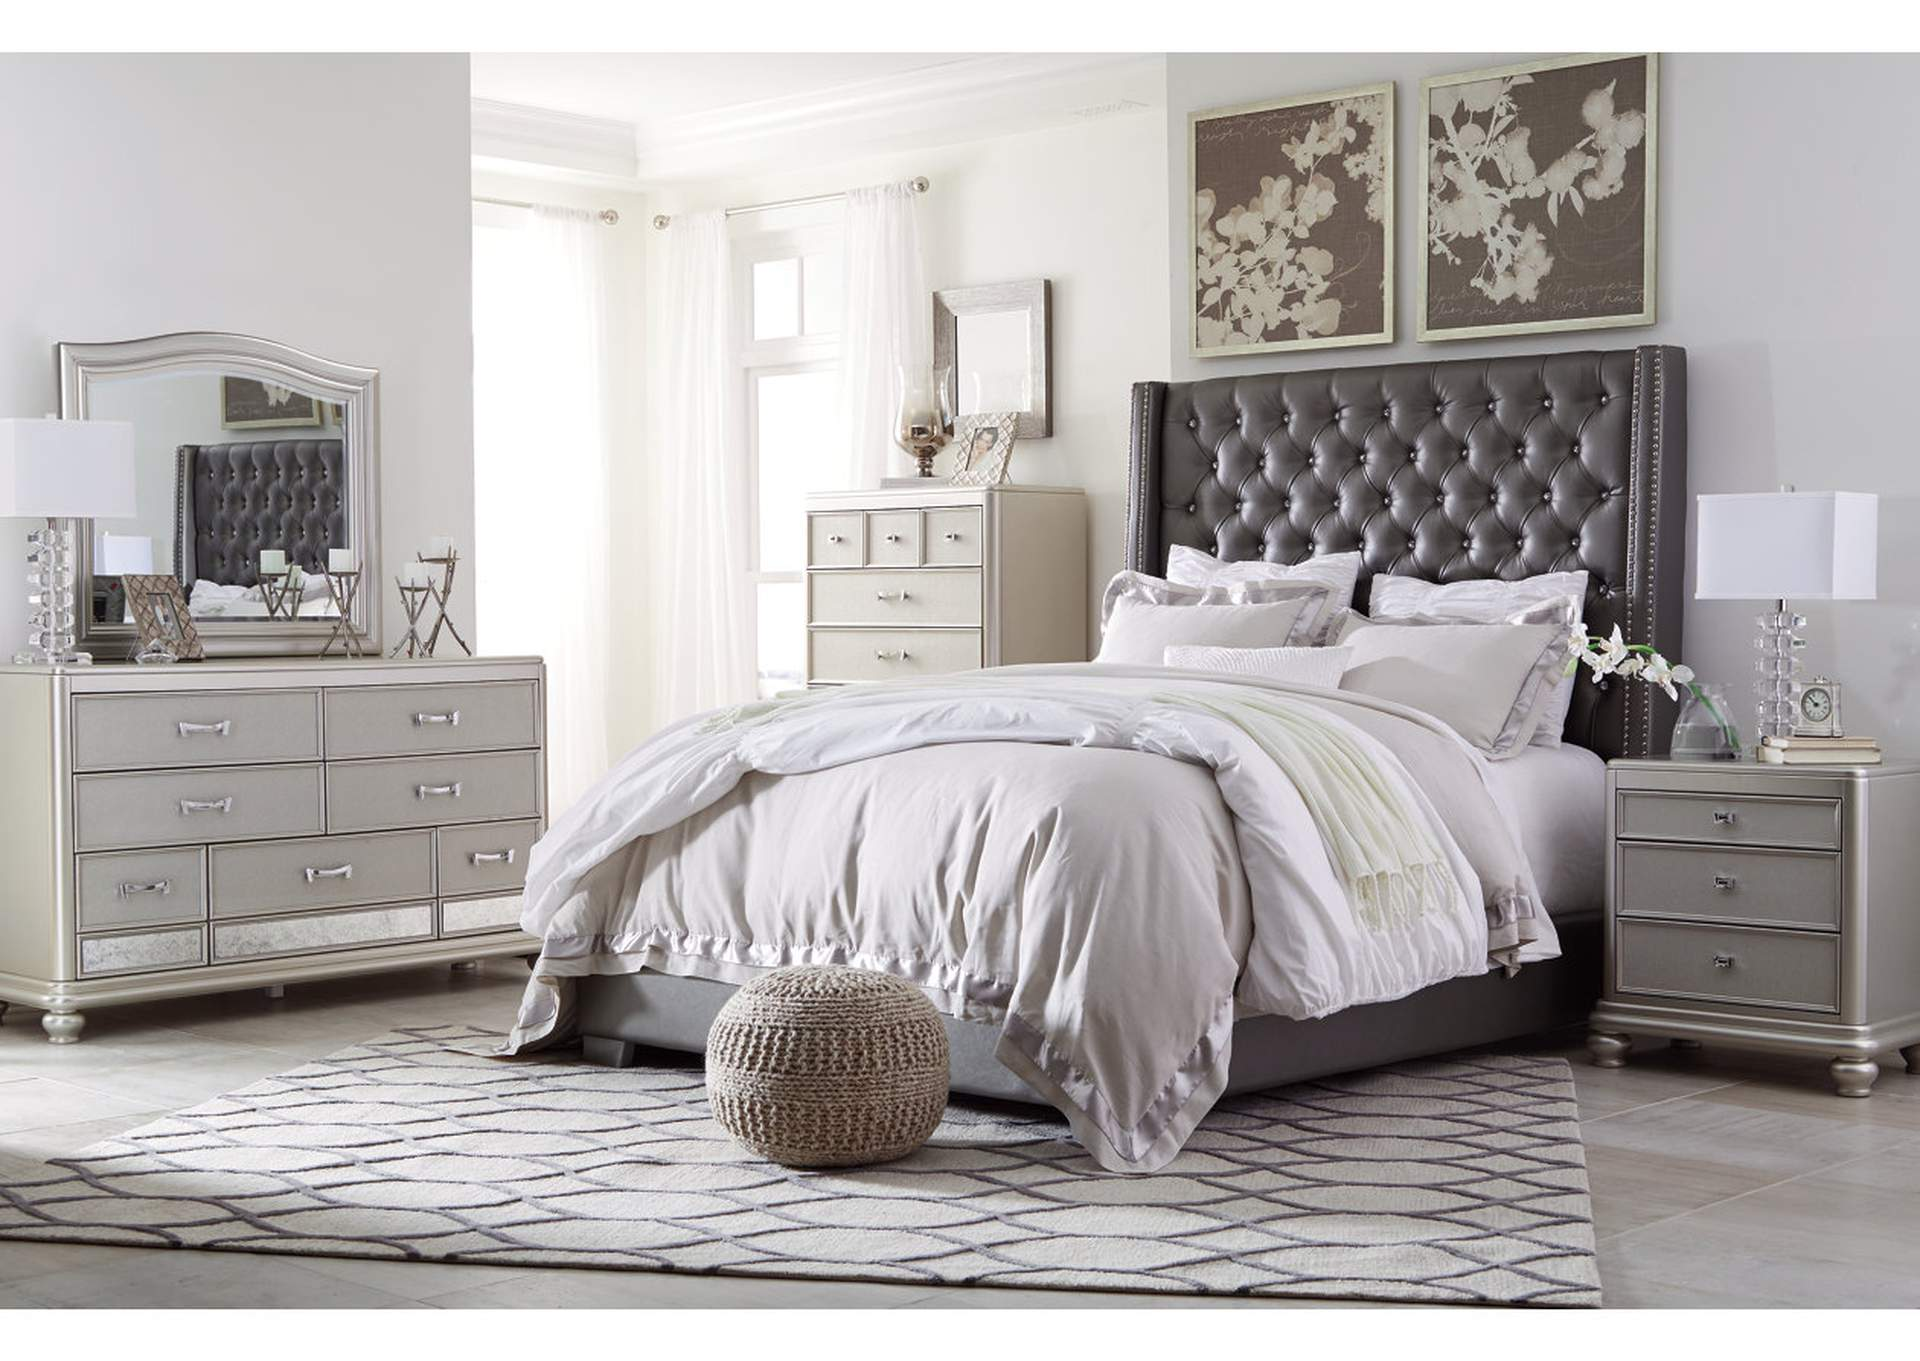 Coralayne Gray King Upholstered Bed w/Dresser, Mirror & Nightstand,Signature Design By Ashley